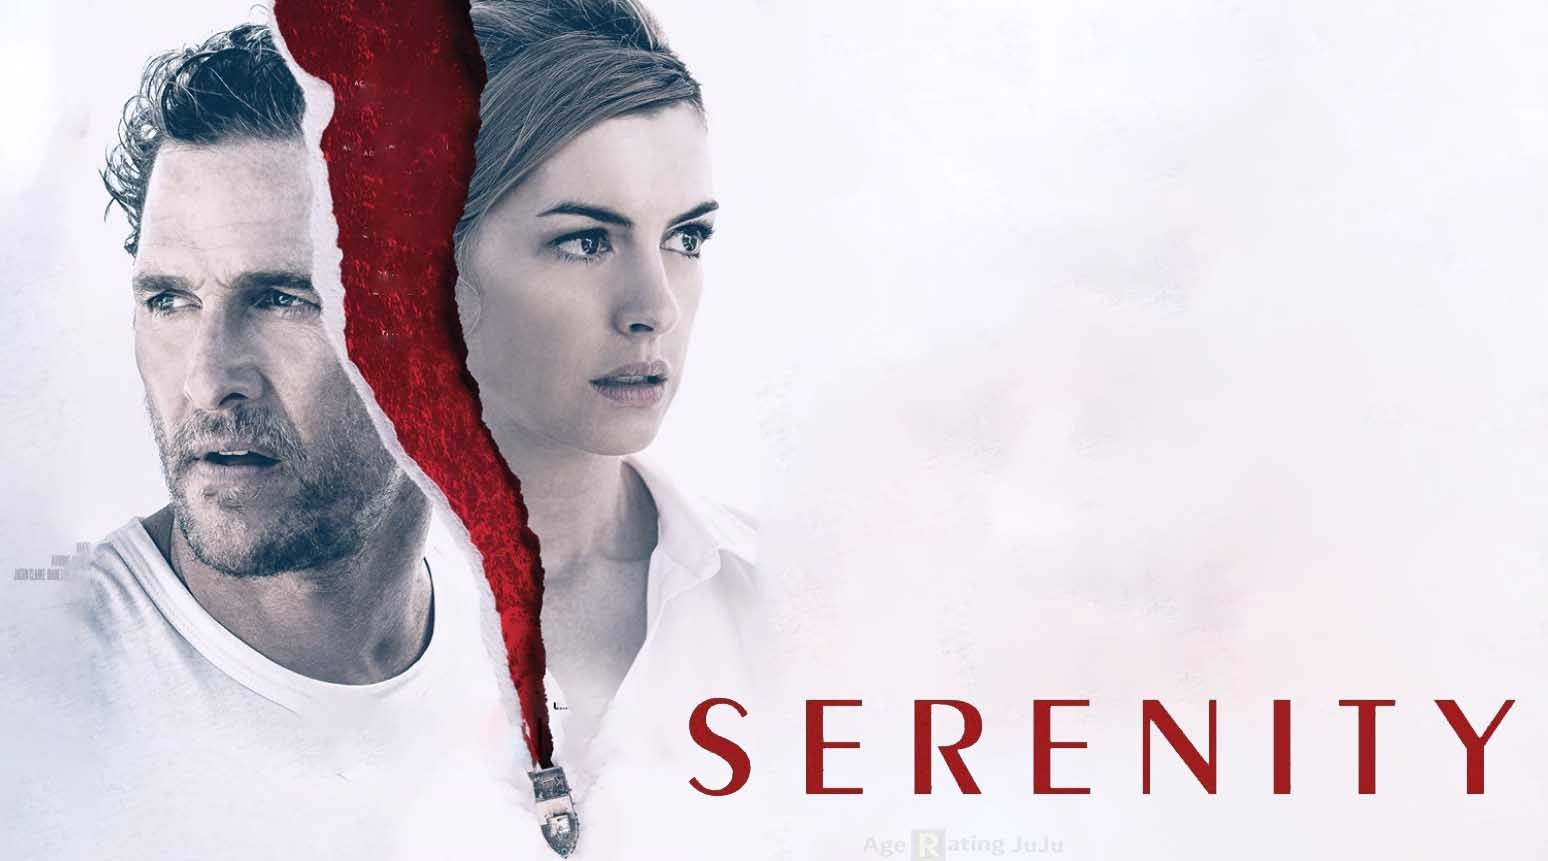 serenity-age-rating-2018-movie-poster-images-and-wallpapers.jpg